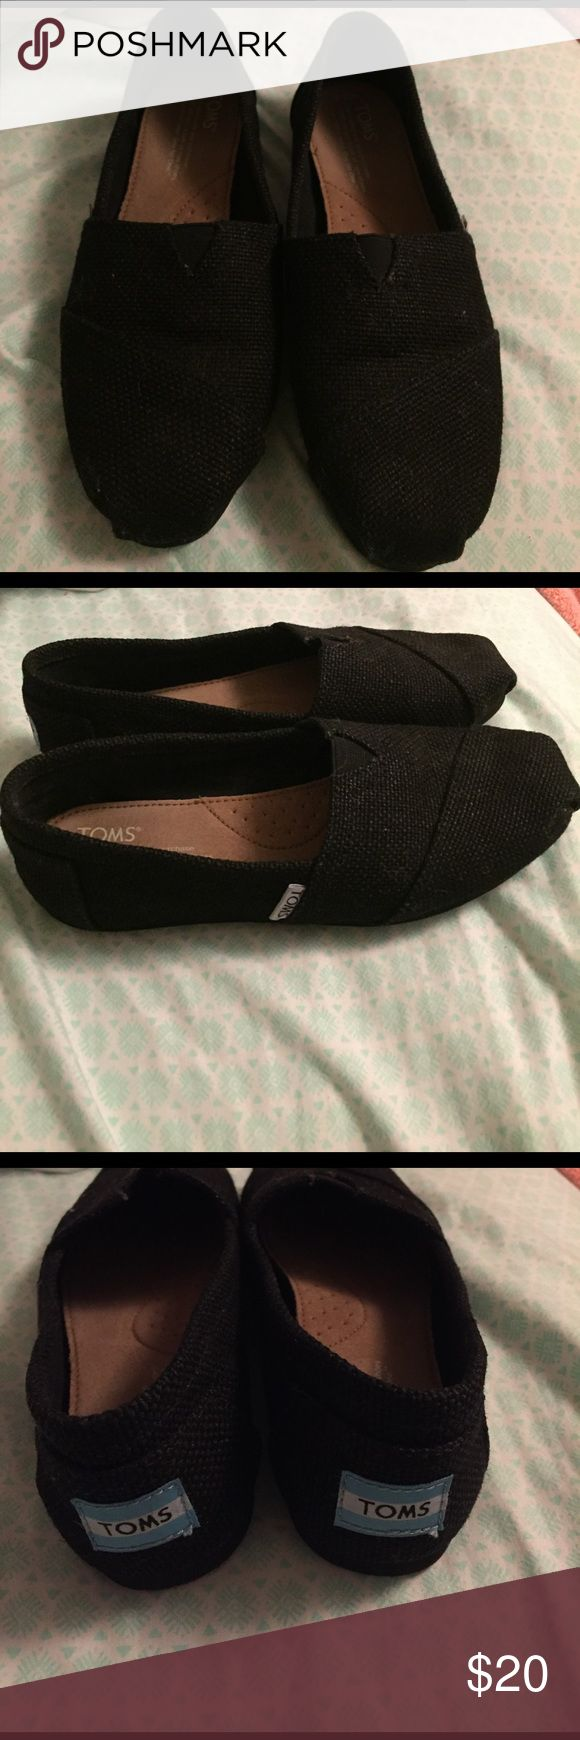 Black Burlap TOMS women's size 6.5 Black burlap TOMS, worn very few times TOMS Shoes Flats & Loafers